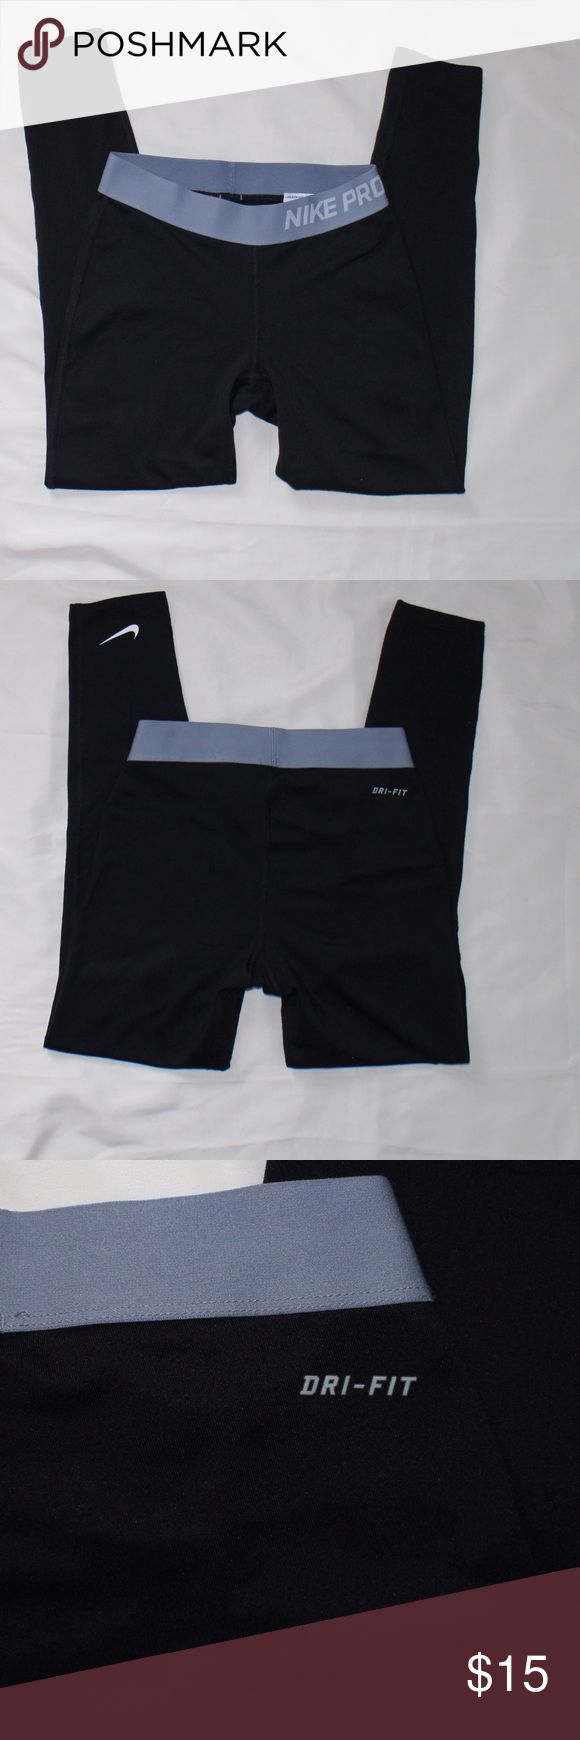 """Nike Pro Compression Black Leggings Sz SM In good shape, Nike Pro compression leggings. Logos shows some cracking. Measurements are taken on leggings laying flat: 28"""" outseam, 22"""" inseam, & 11"""" waist. All reasonable offers considered. Bundle to save even more! Nike Bottoms Leggings"""